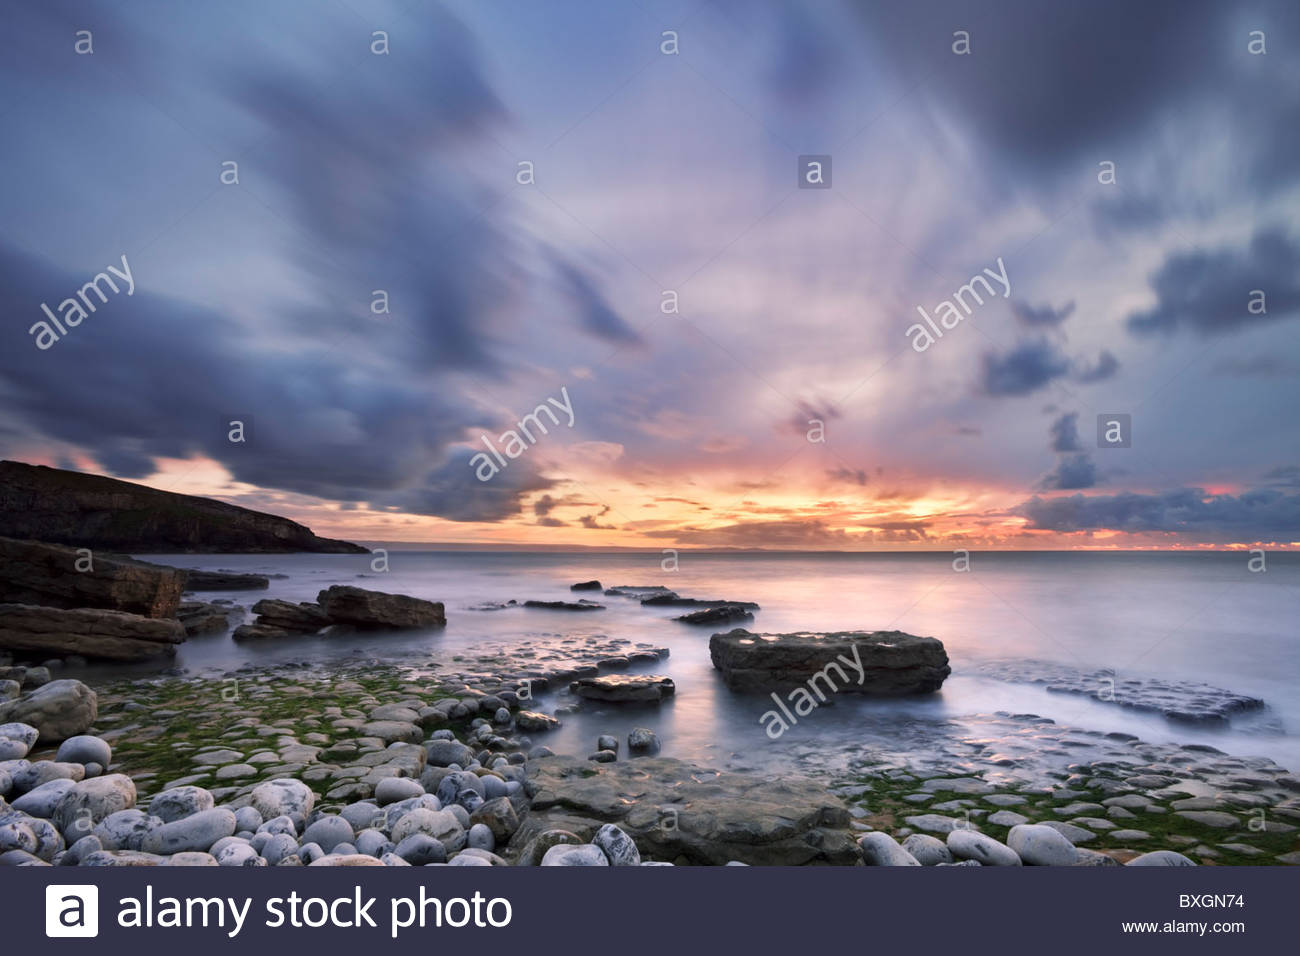 Dunraven Bay, South Glamorgan, Wales, REINO UNIDO Imagen De Stock